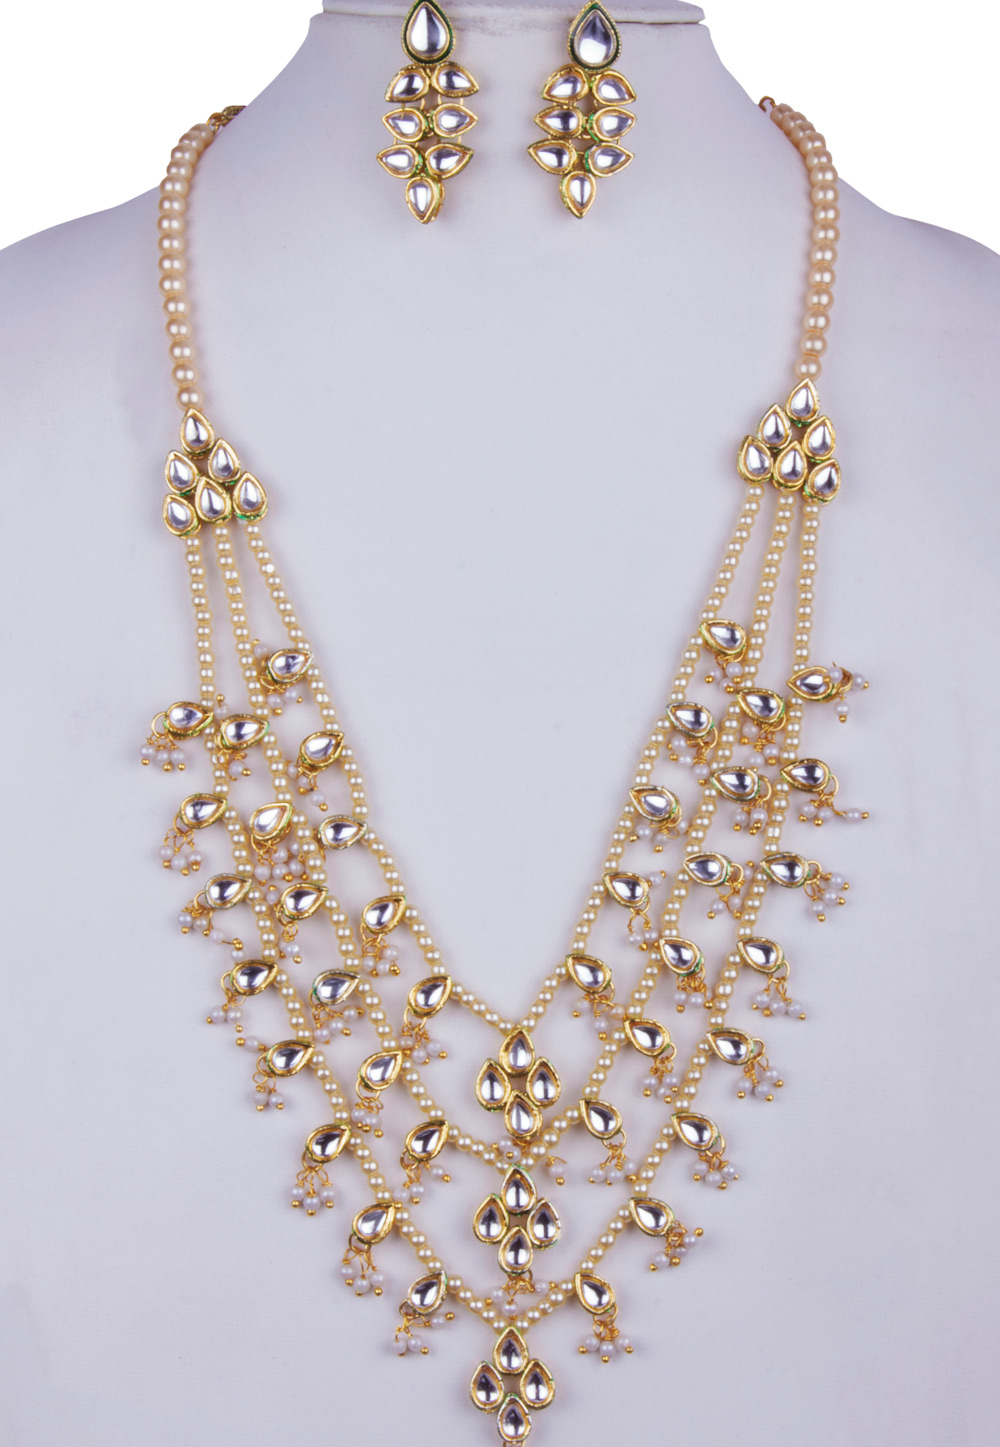 White Alloy Necklace With Earrings 157122